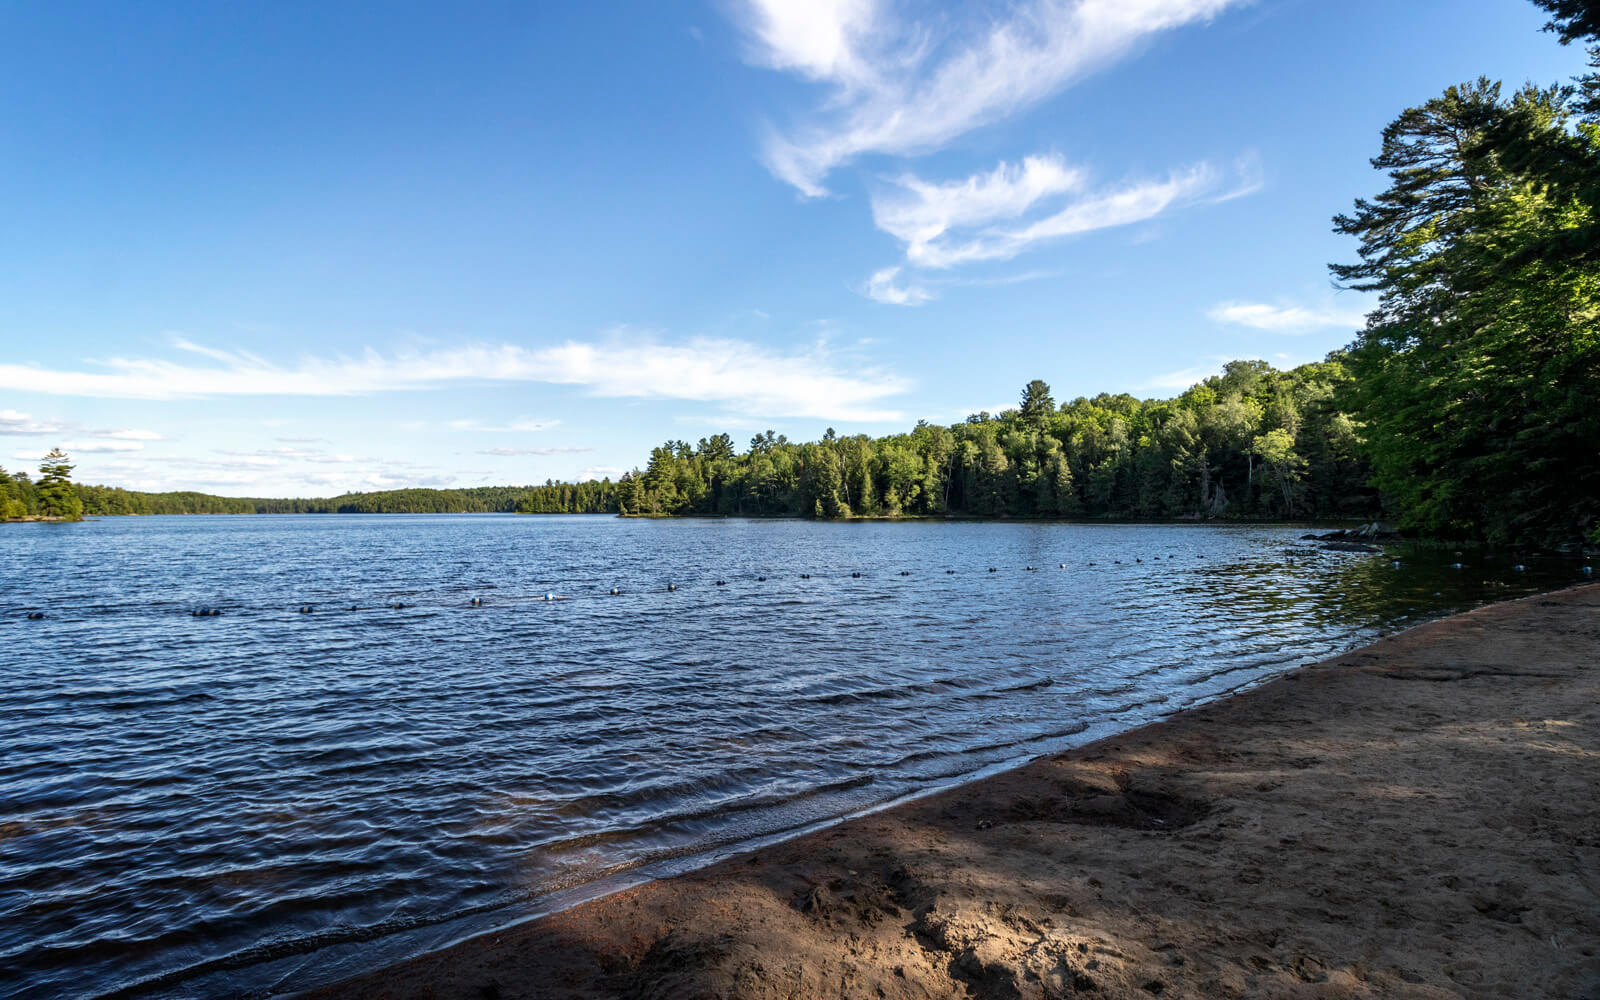 Blue Skies Over the Calm Waters of Silent Lake Provincial Park :: I've Been Bit! Travel Blog